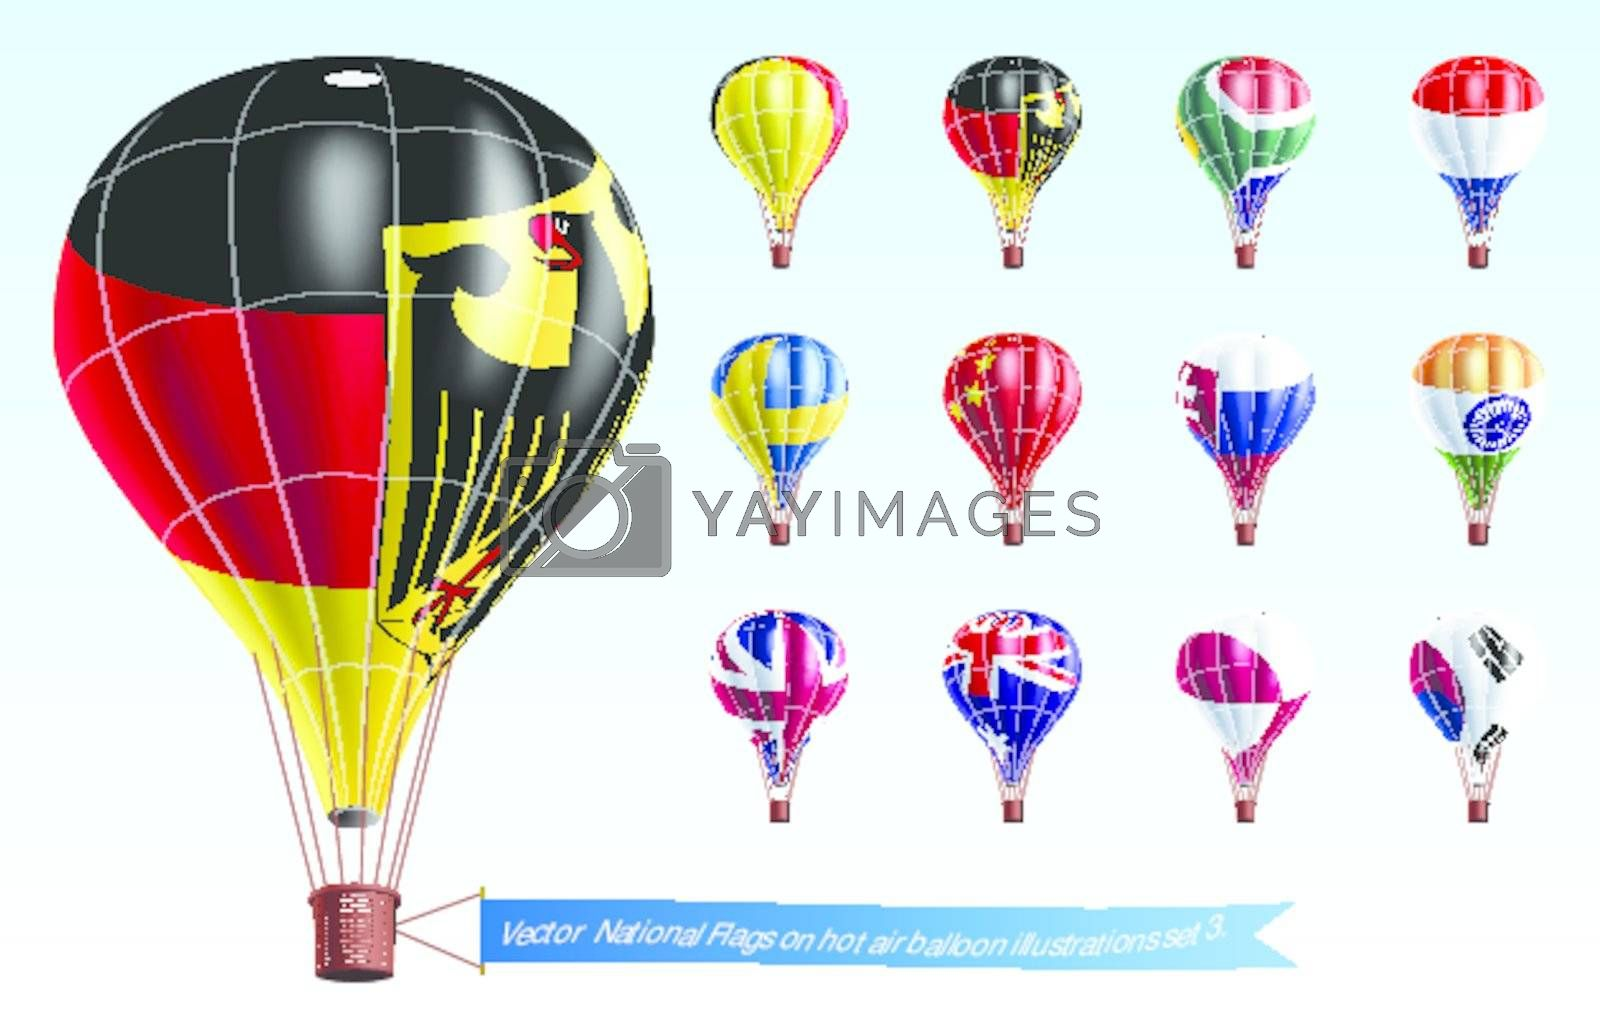 Vector  National Flags on hot air balloon illustrations set 3